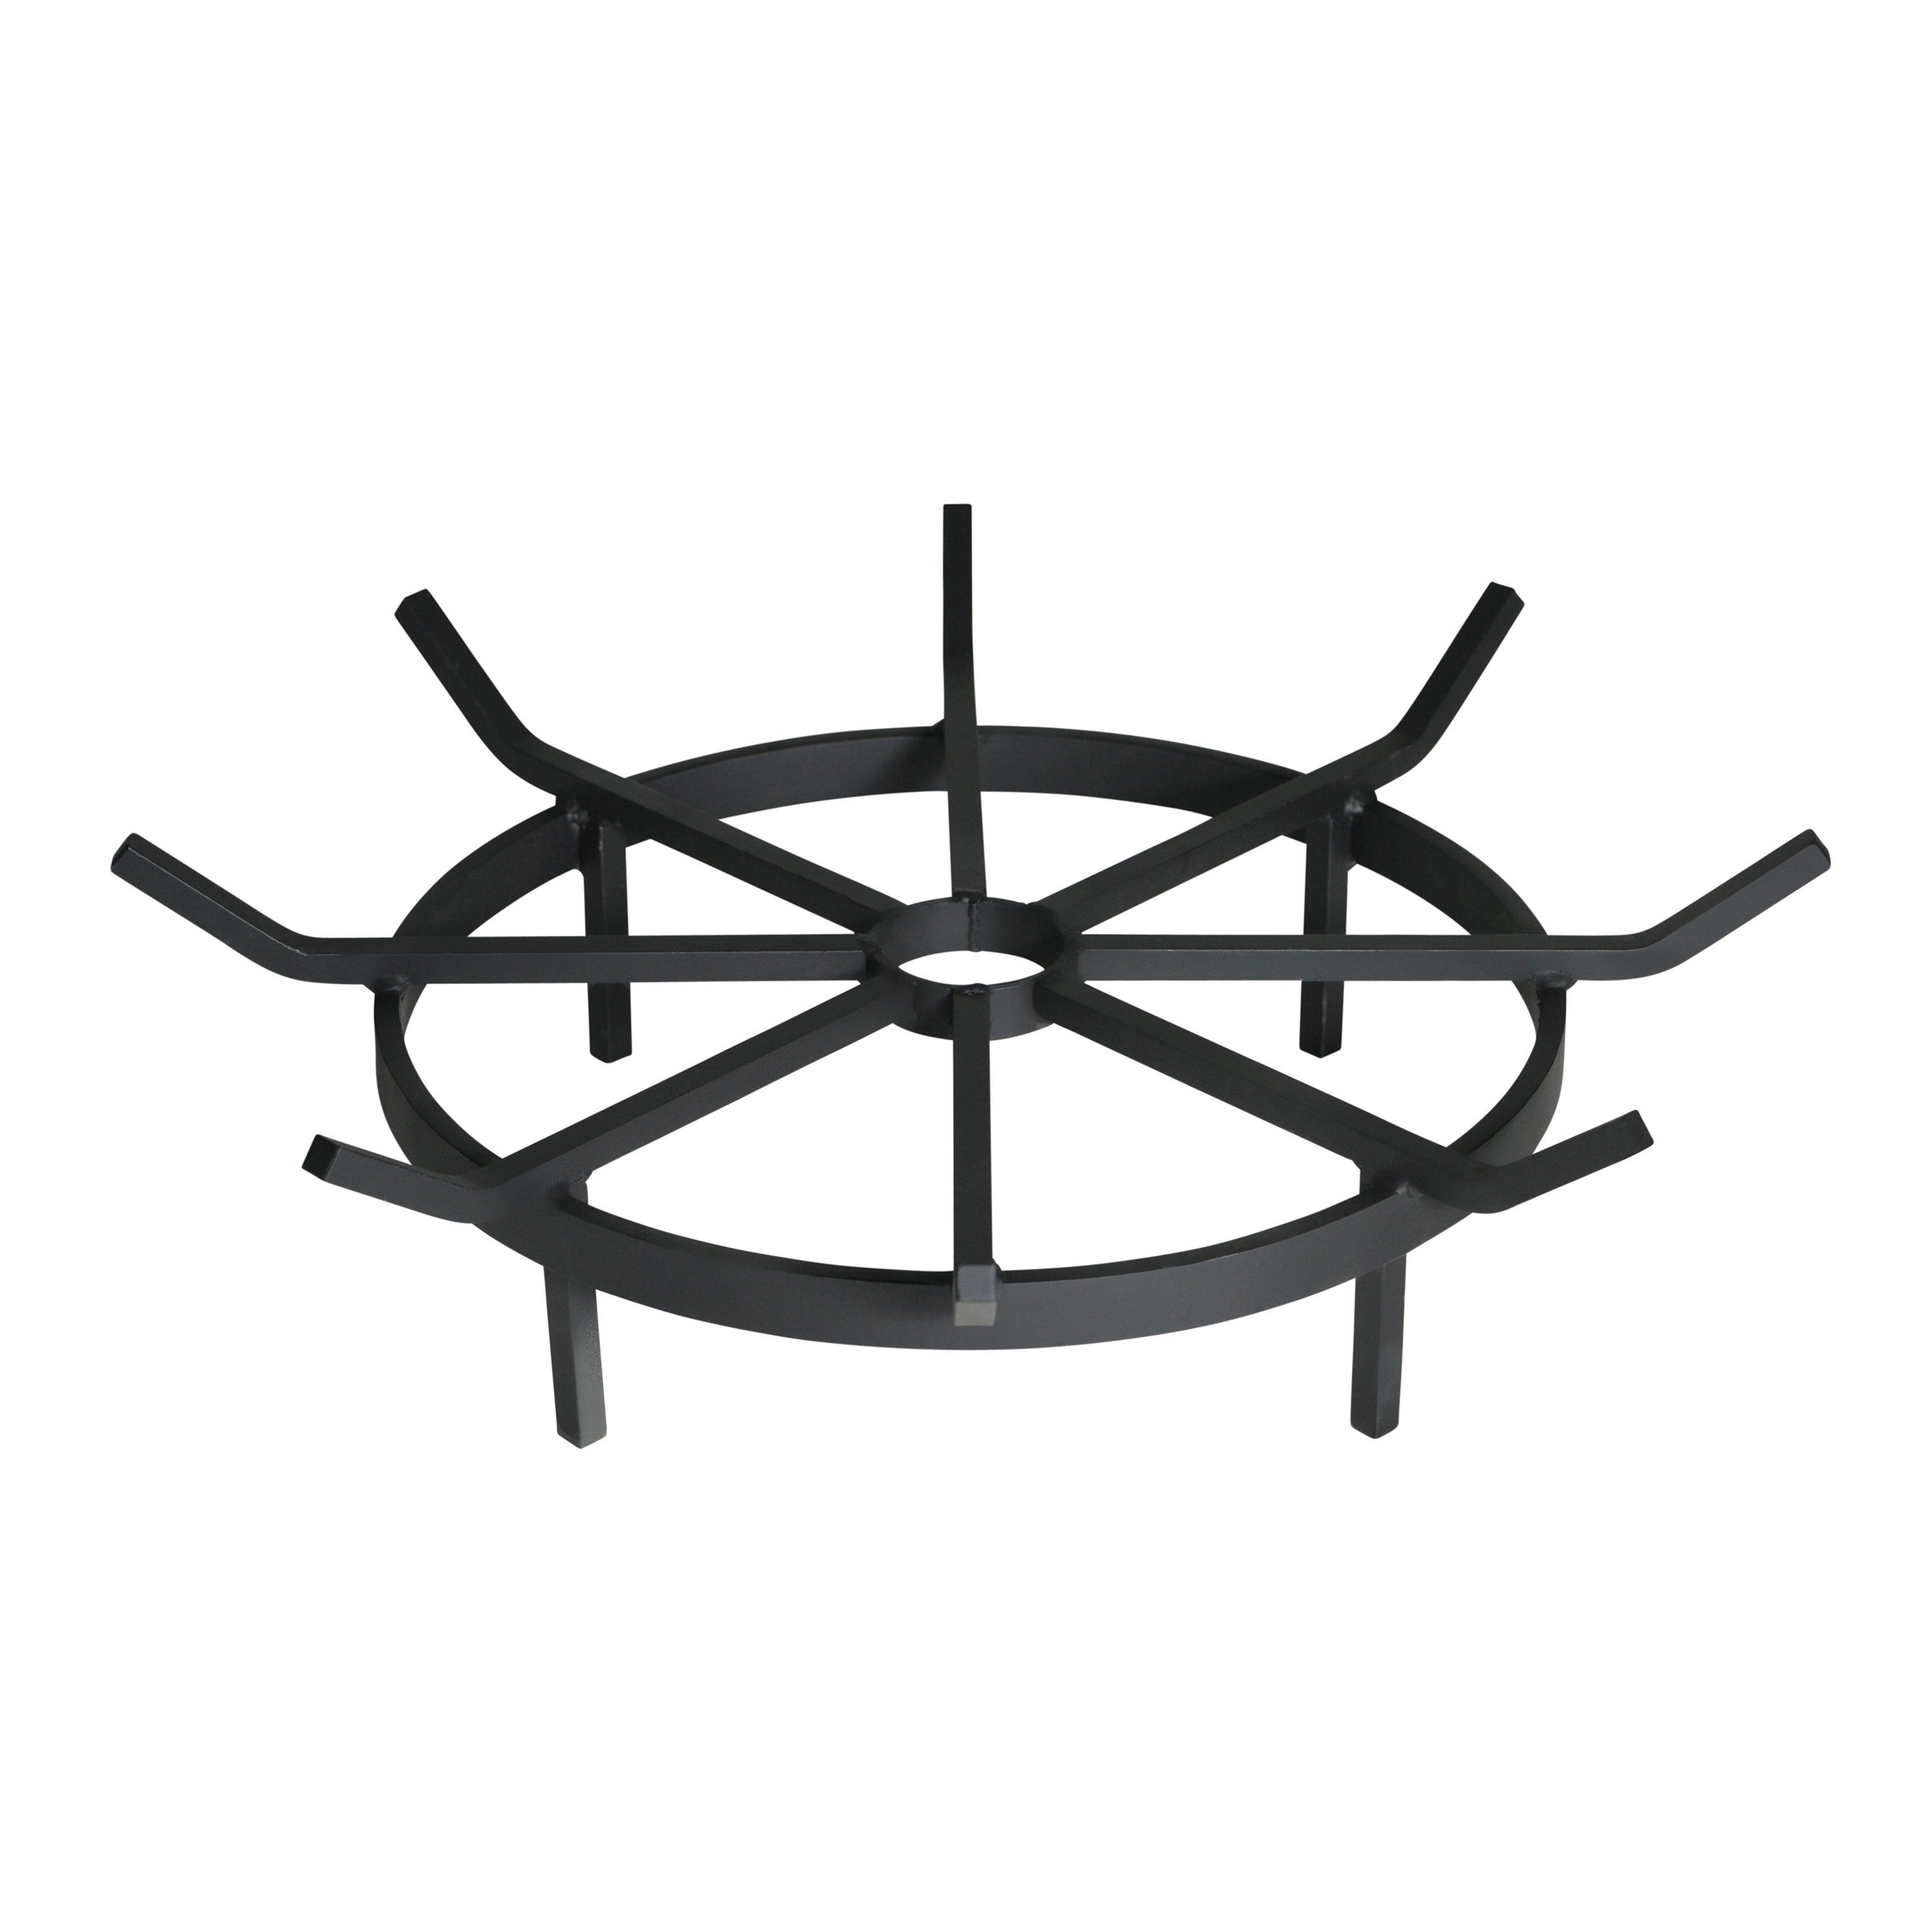 20 Inch Wagon Wheel Fire Pit Grate Fire Pit Grate Wood Burning Fire Pit Wheel Fire Pit